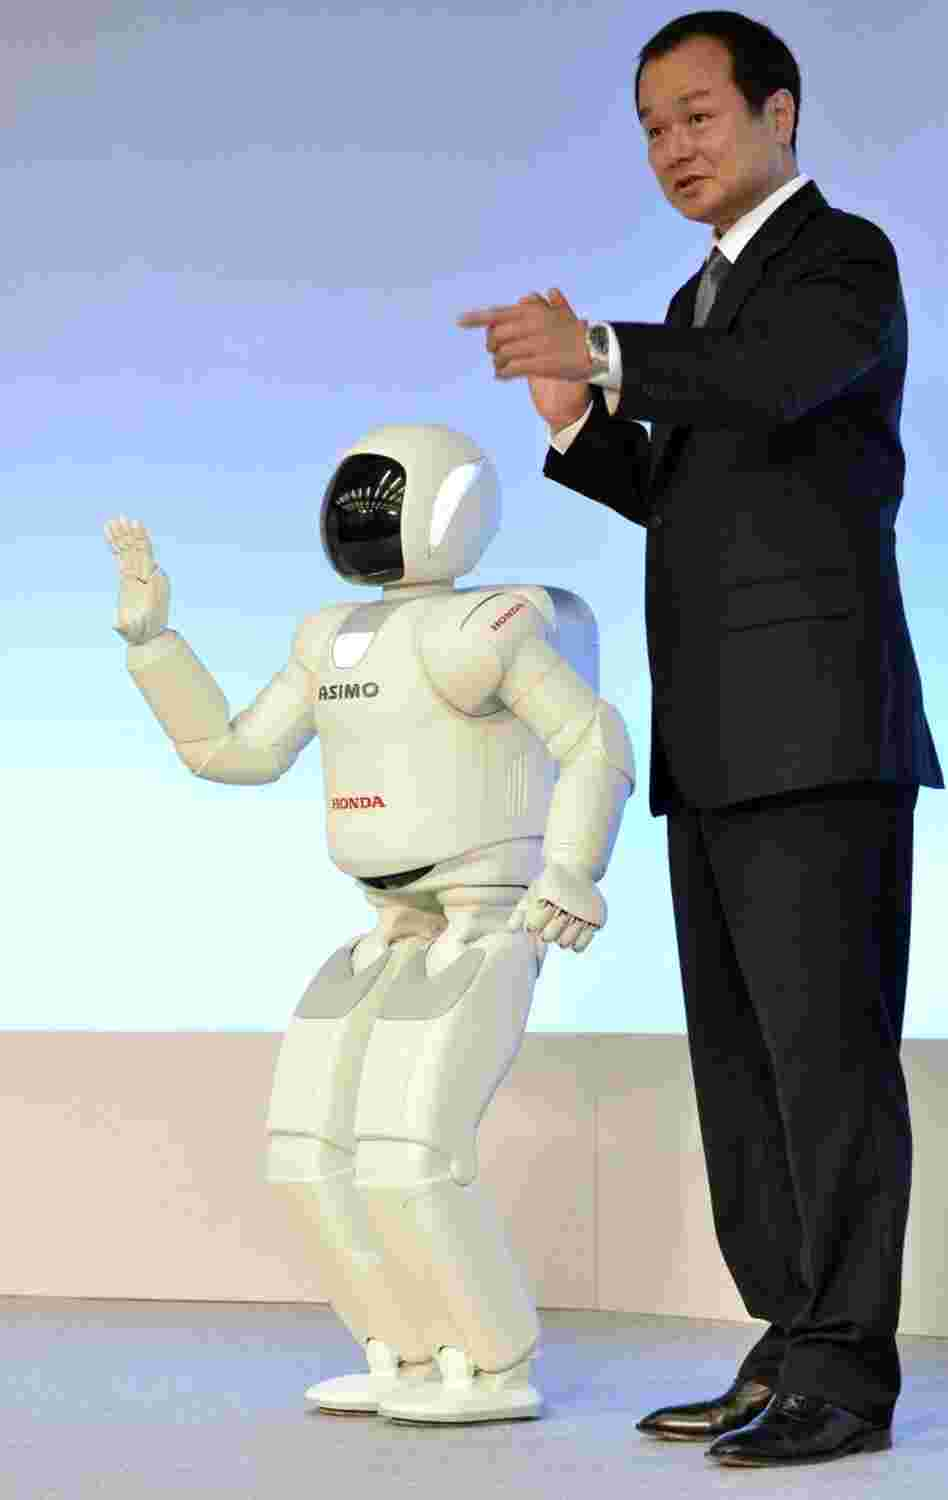 Man and machine stand side-by-side: Honda's Asimo robot.